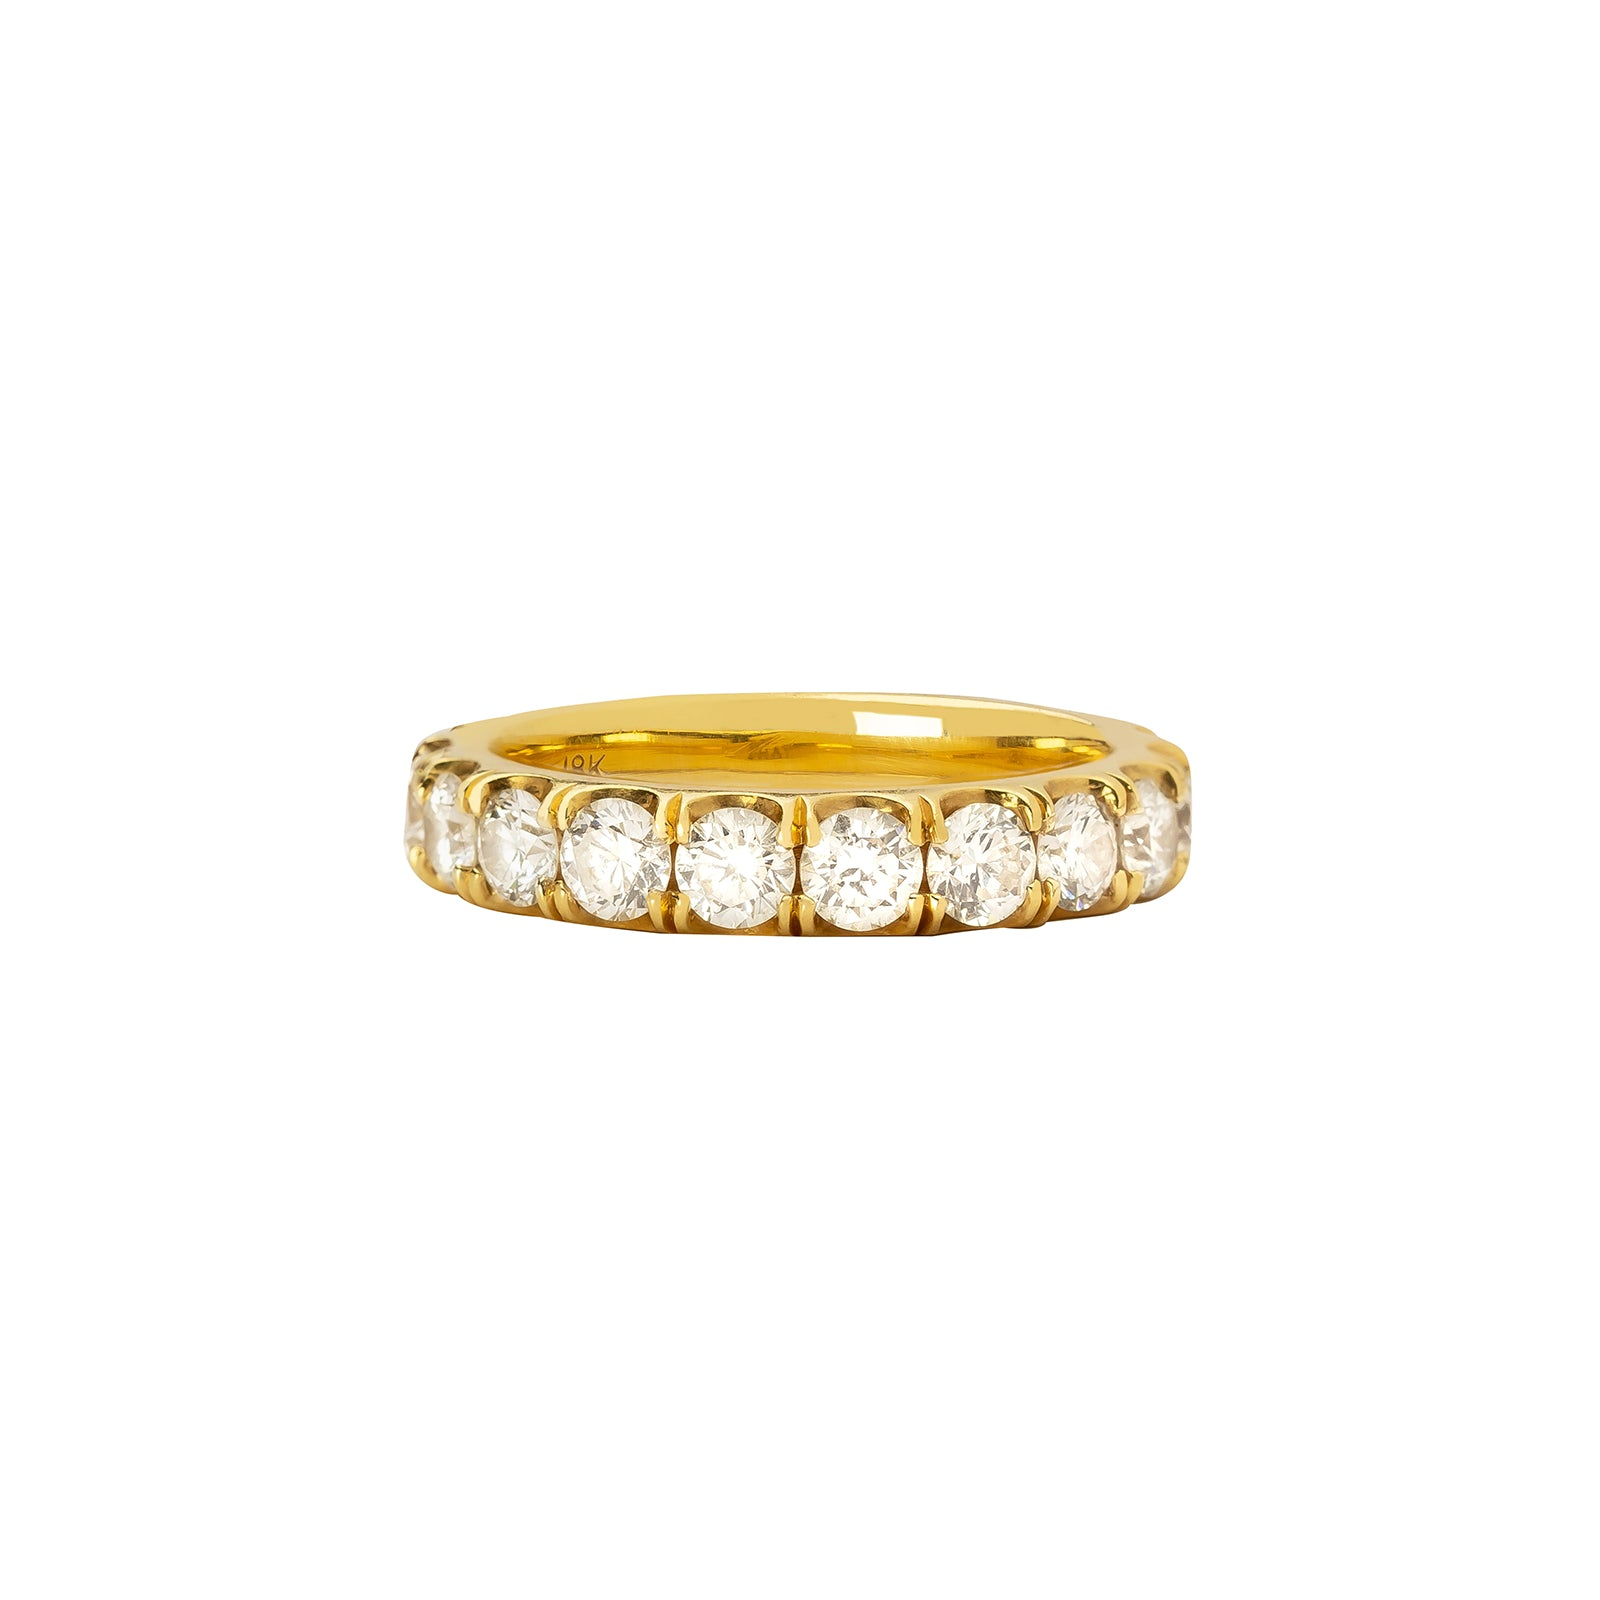 Shay Round Diamond Eternity Band - Yellow Gold - Rings - Broken English Jewelry